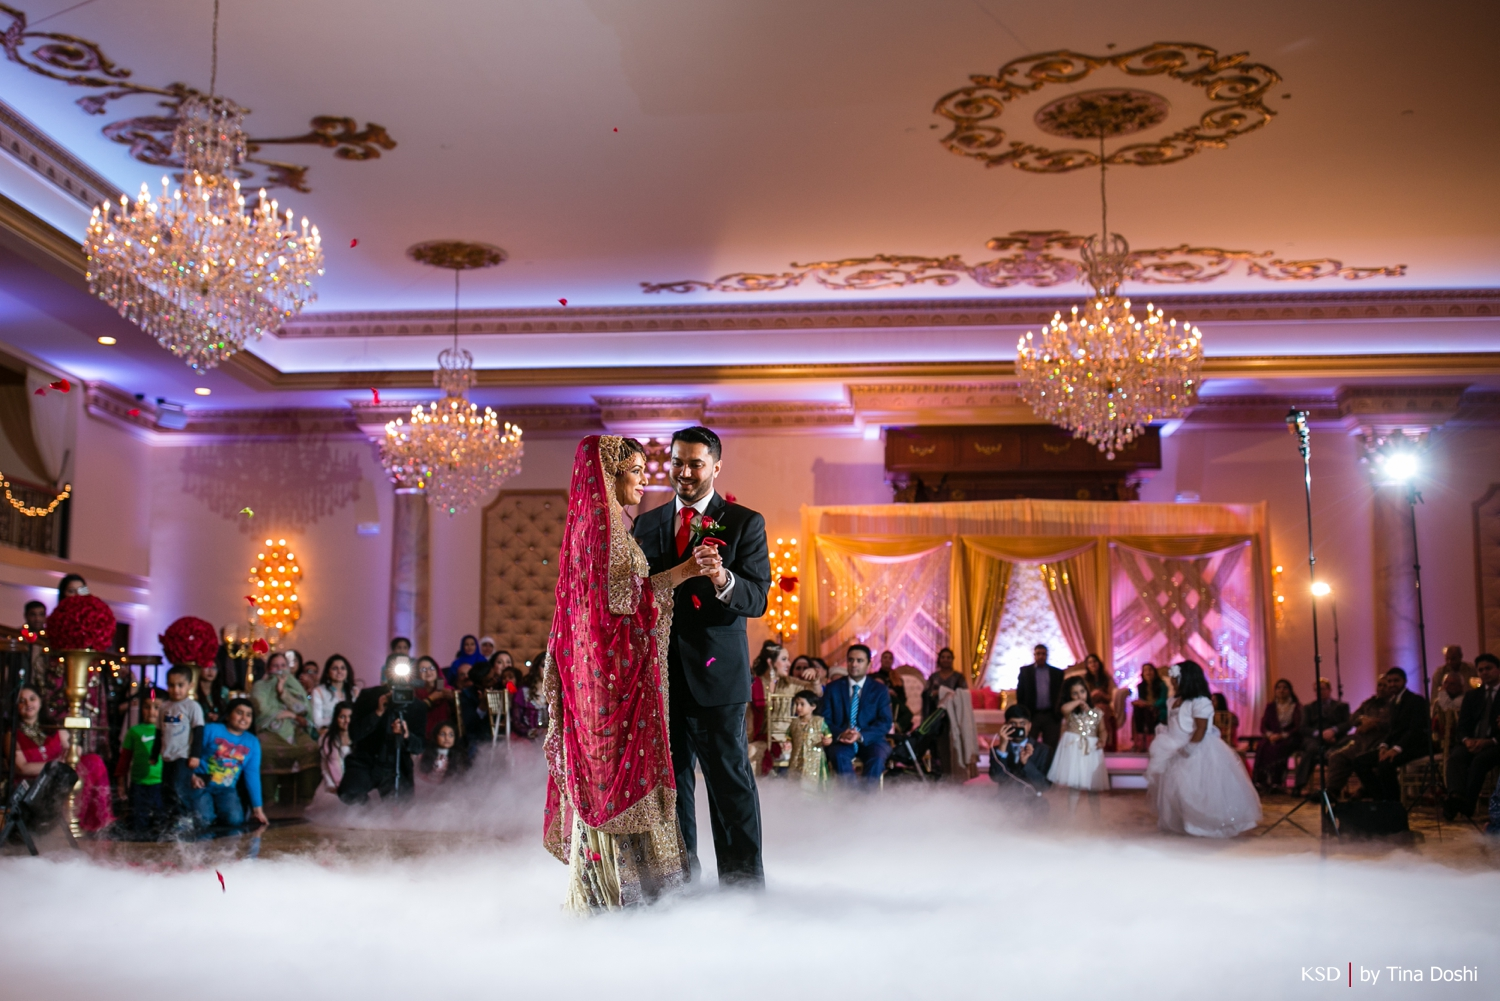 nj_south_asian_wedding_0136